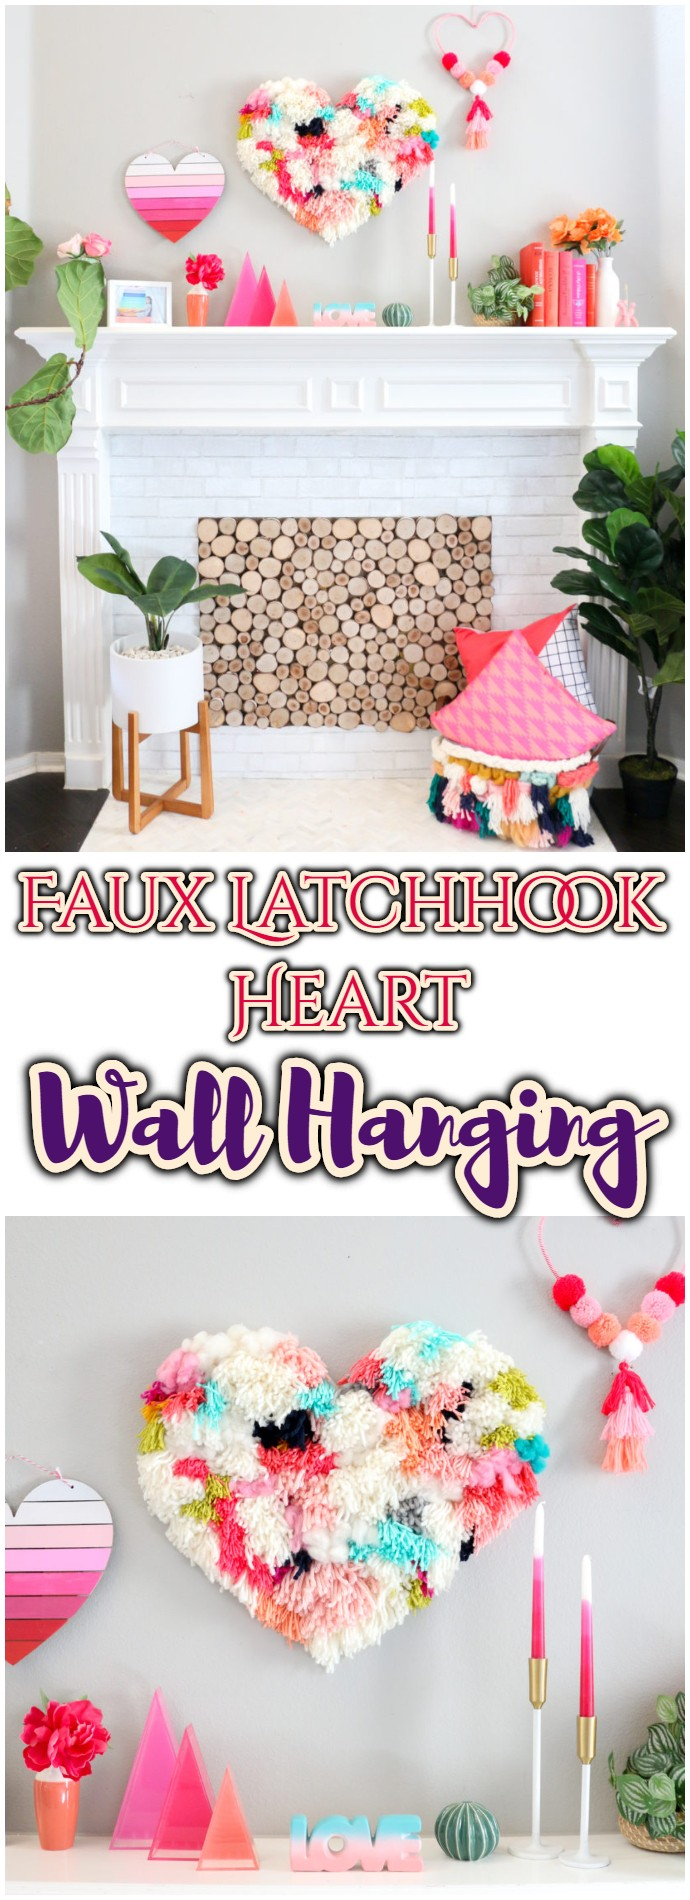 Diy Faux Latchhook Heart Wall Hanging